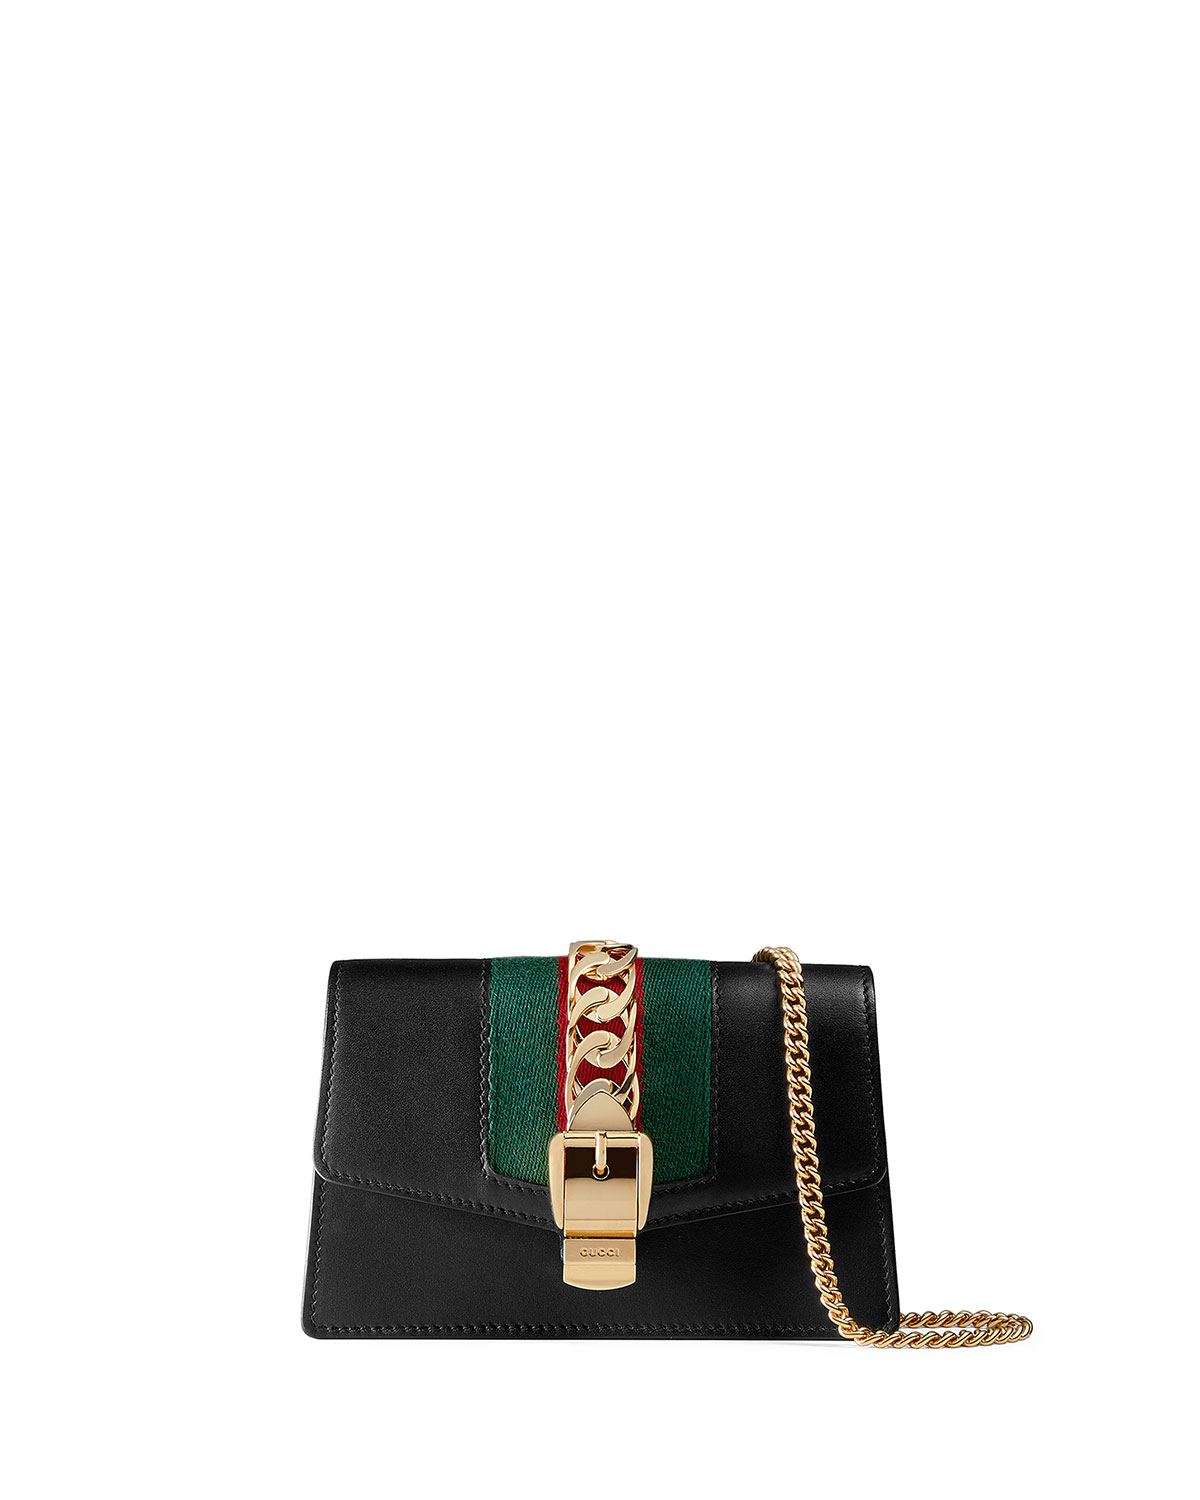 7b9075220 Gucci Sylvie Super Mini Leather Wallet on a Chain | Neiman Marcus